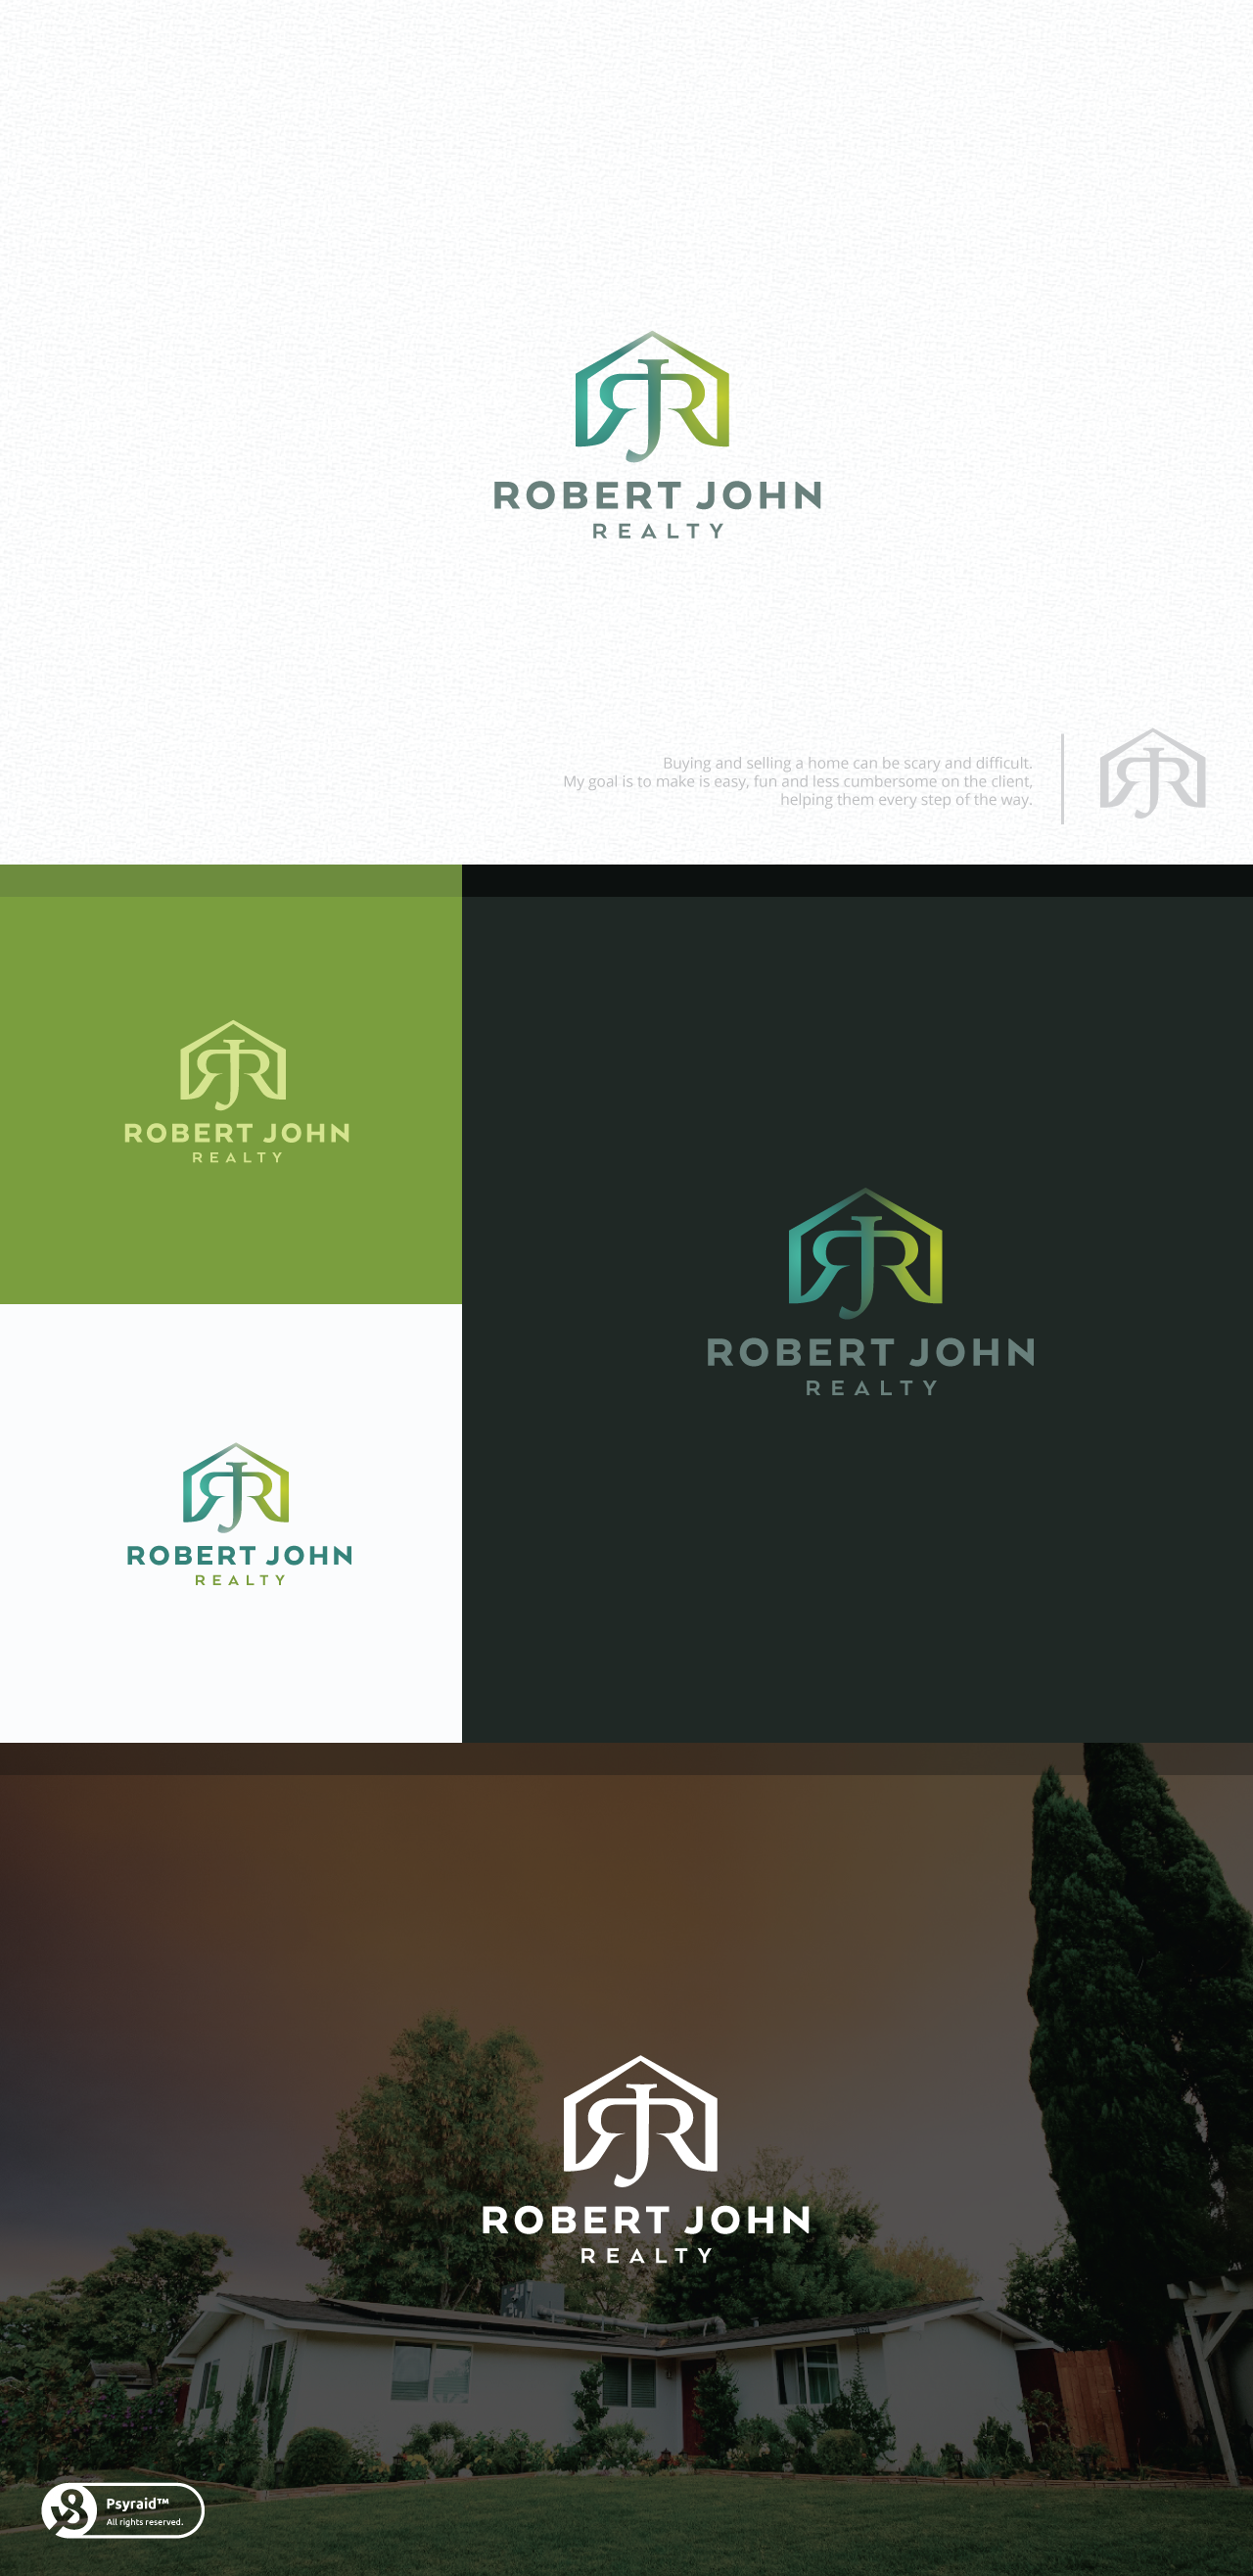 Looking for fresh, approachable, sophisticated, creative real estate logo for my new company.